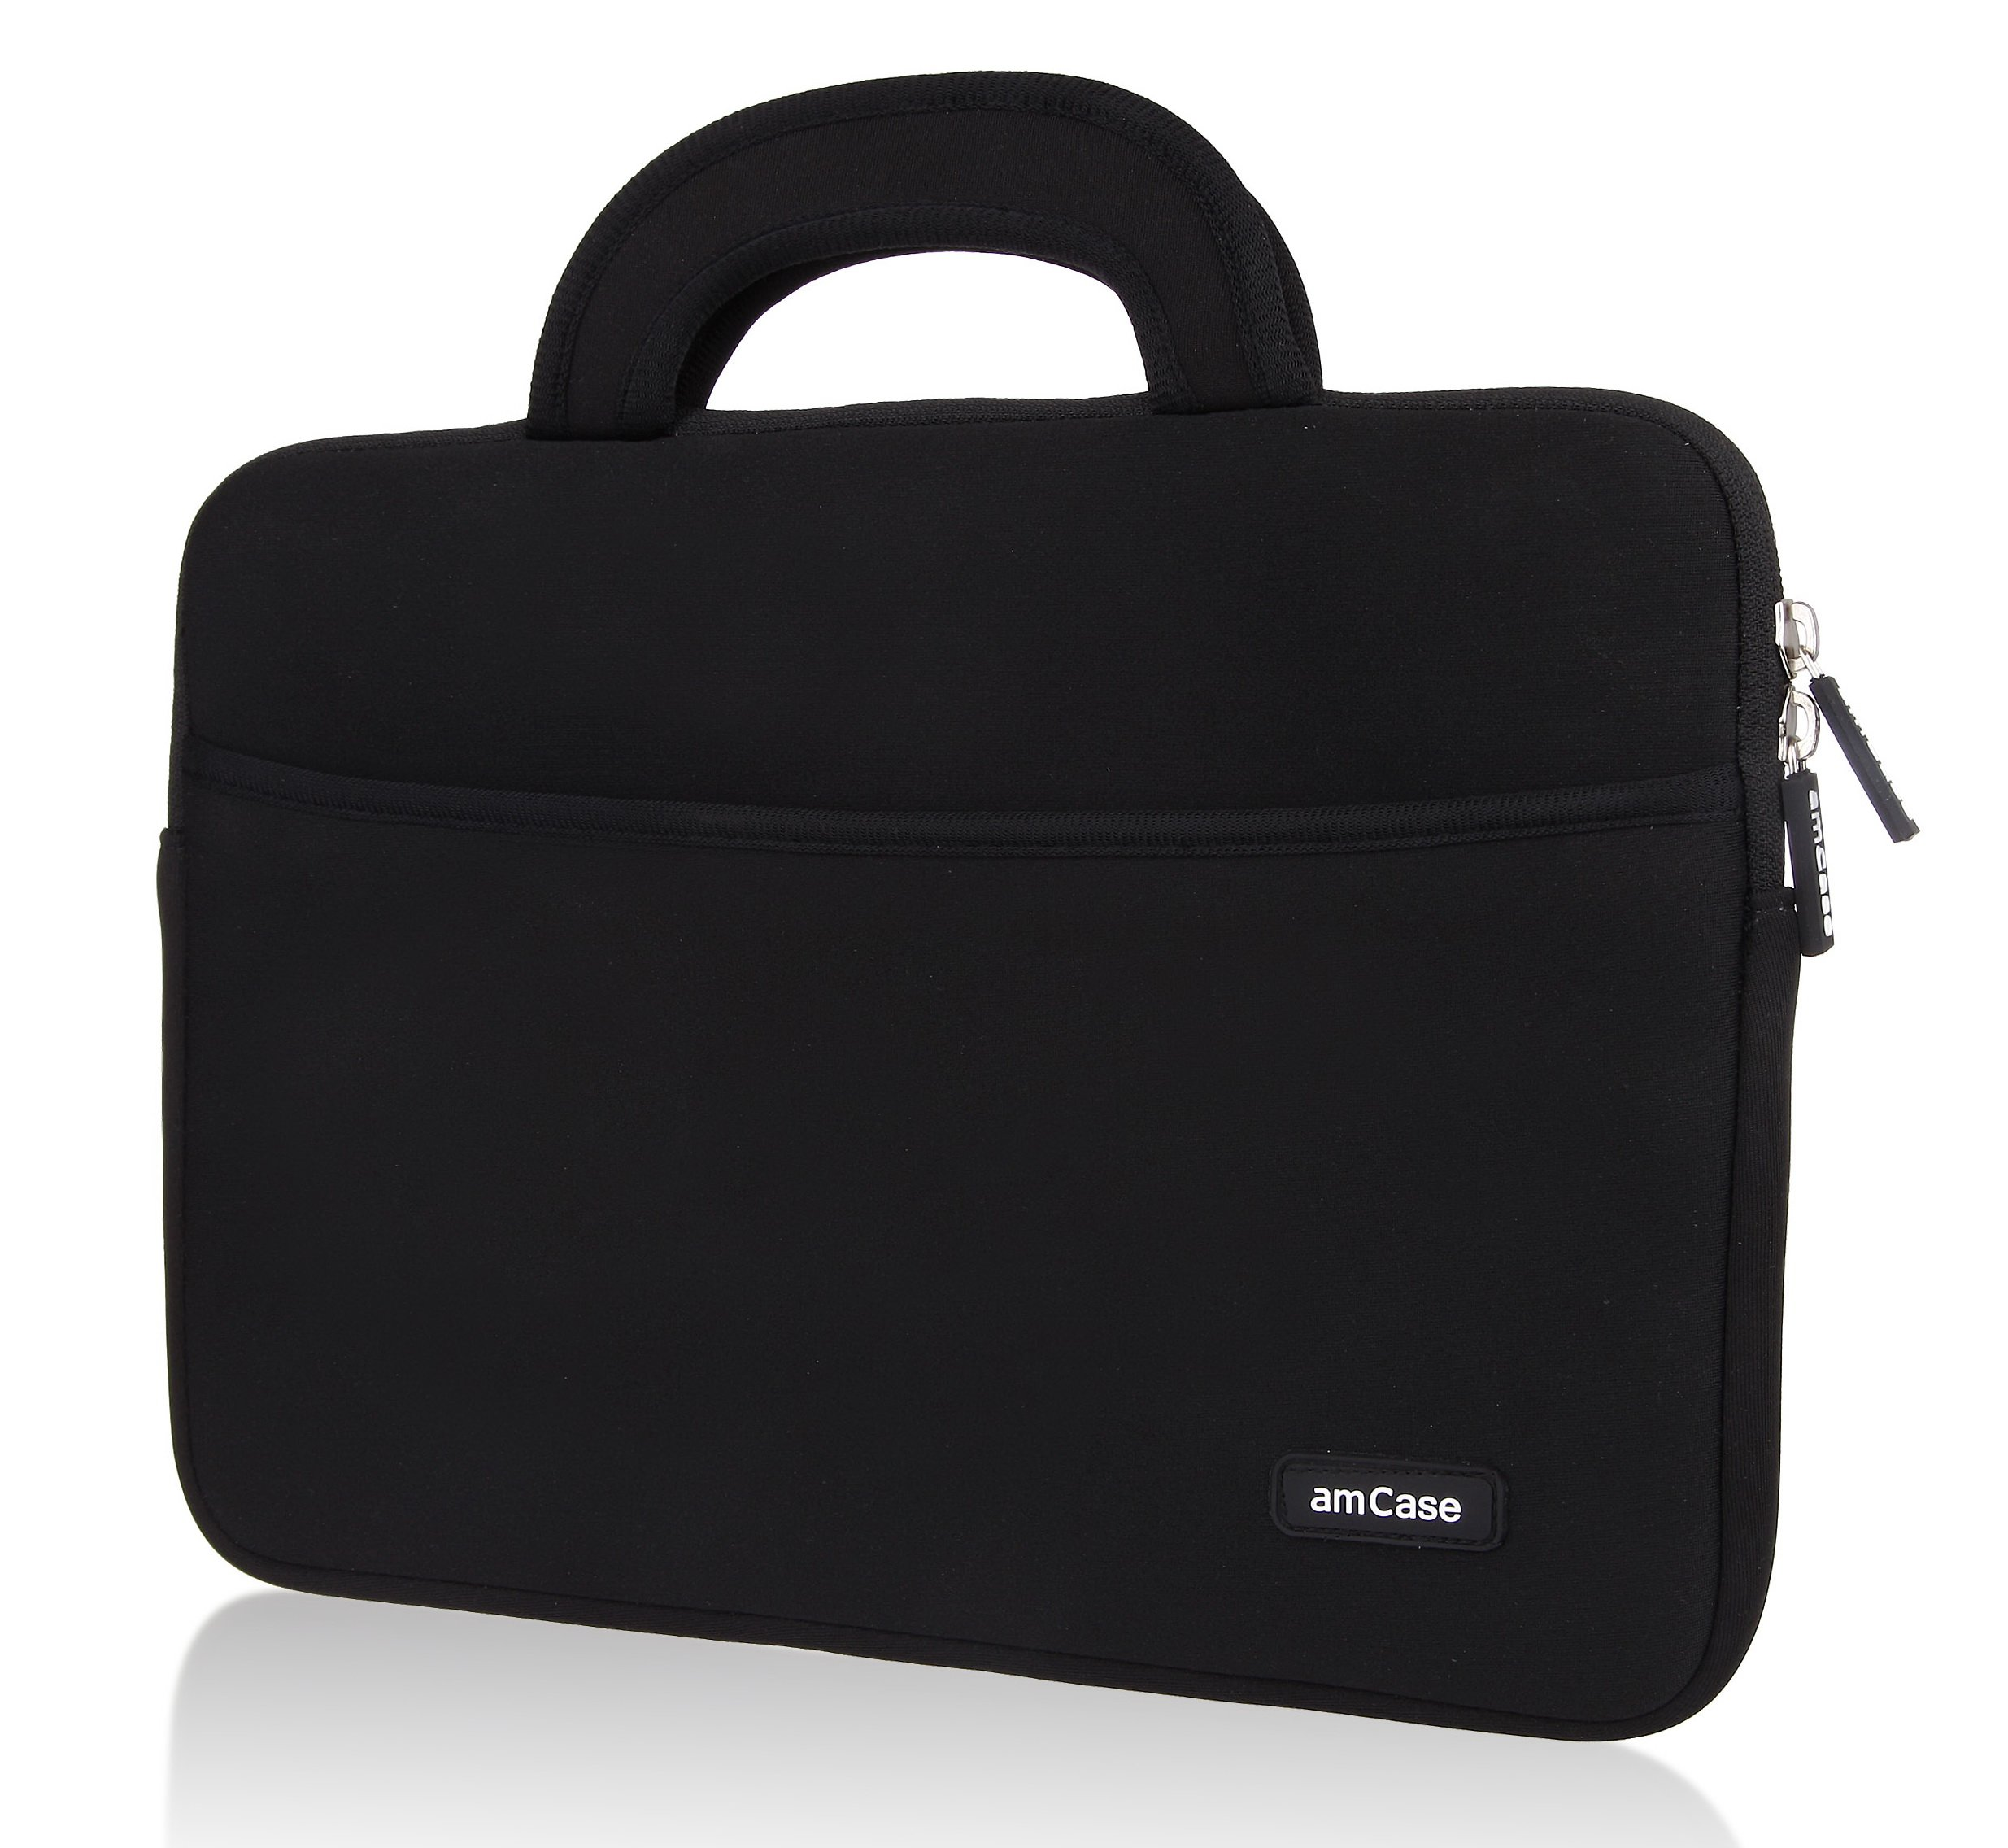 amCase Chromebook Case, 11.6 to 12 Inch Laptop Sleeve Case for Acer Chromebook 11 C720 740 / HP Stream/Samsung Chromebook 2 / Macbook/Notebook Laptop Sleeve Neoprene w/Handle (BLACK)